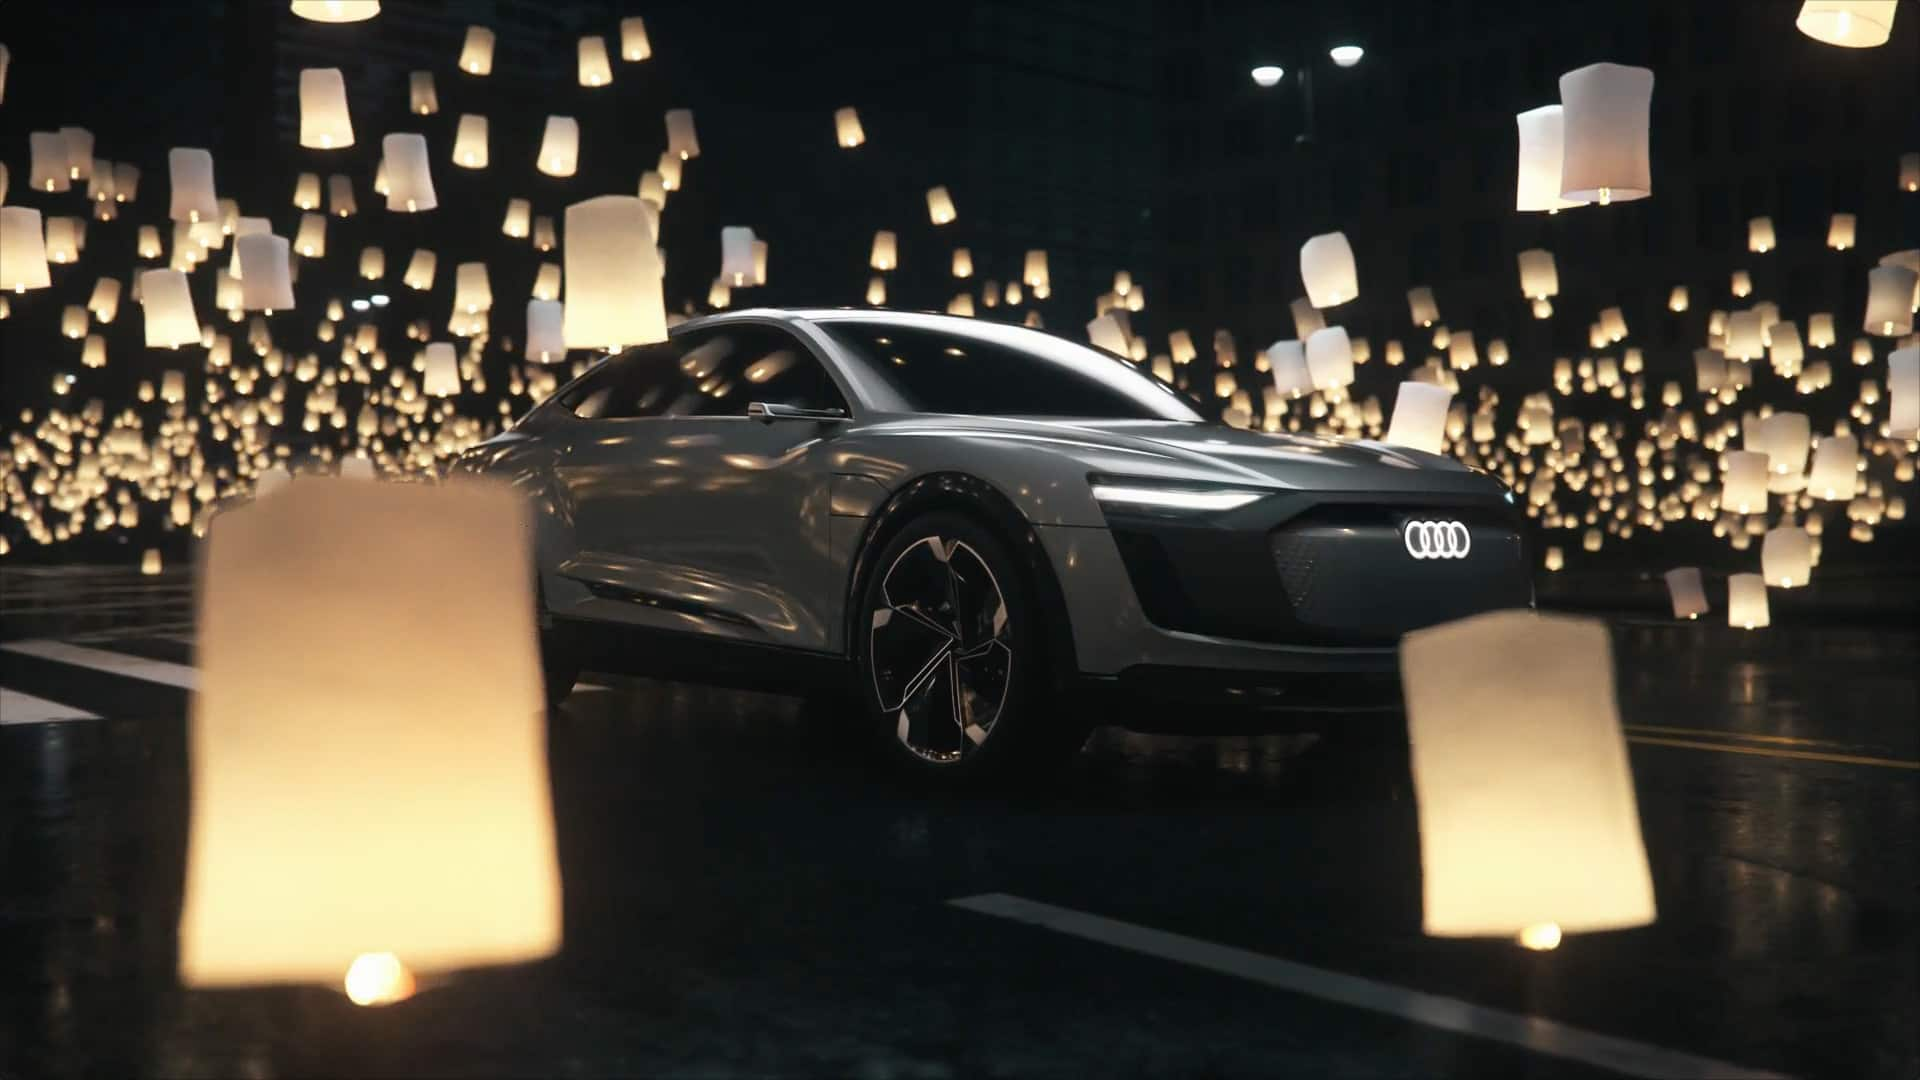 1920x1080_170418_audi_etron_evolution_48sec_germany_1080.jpeg